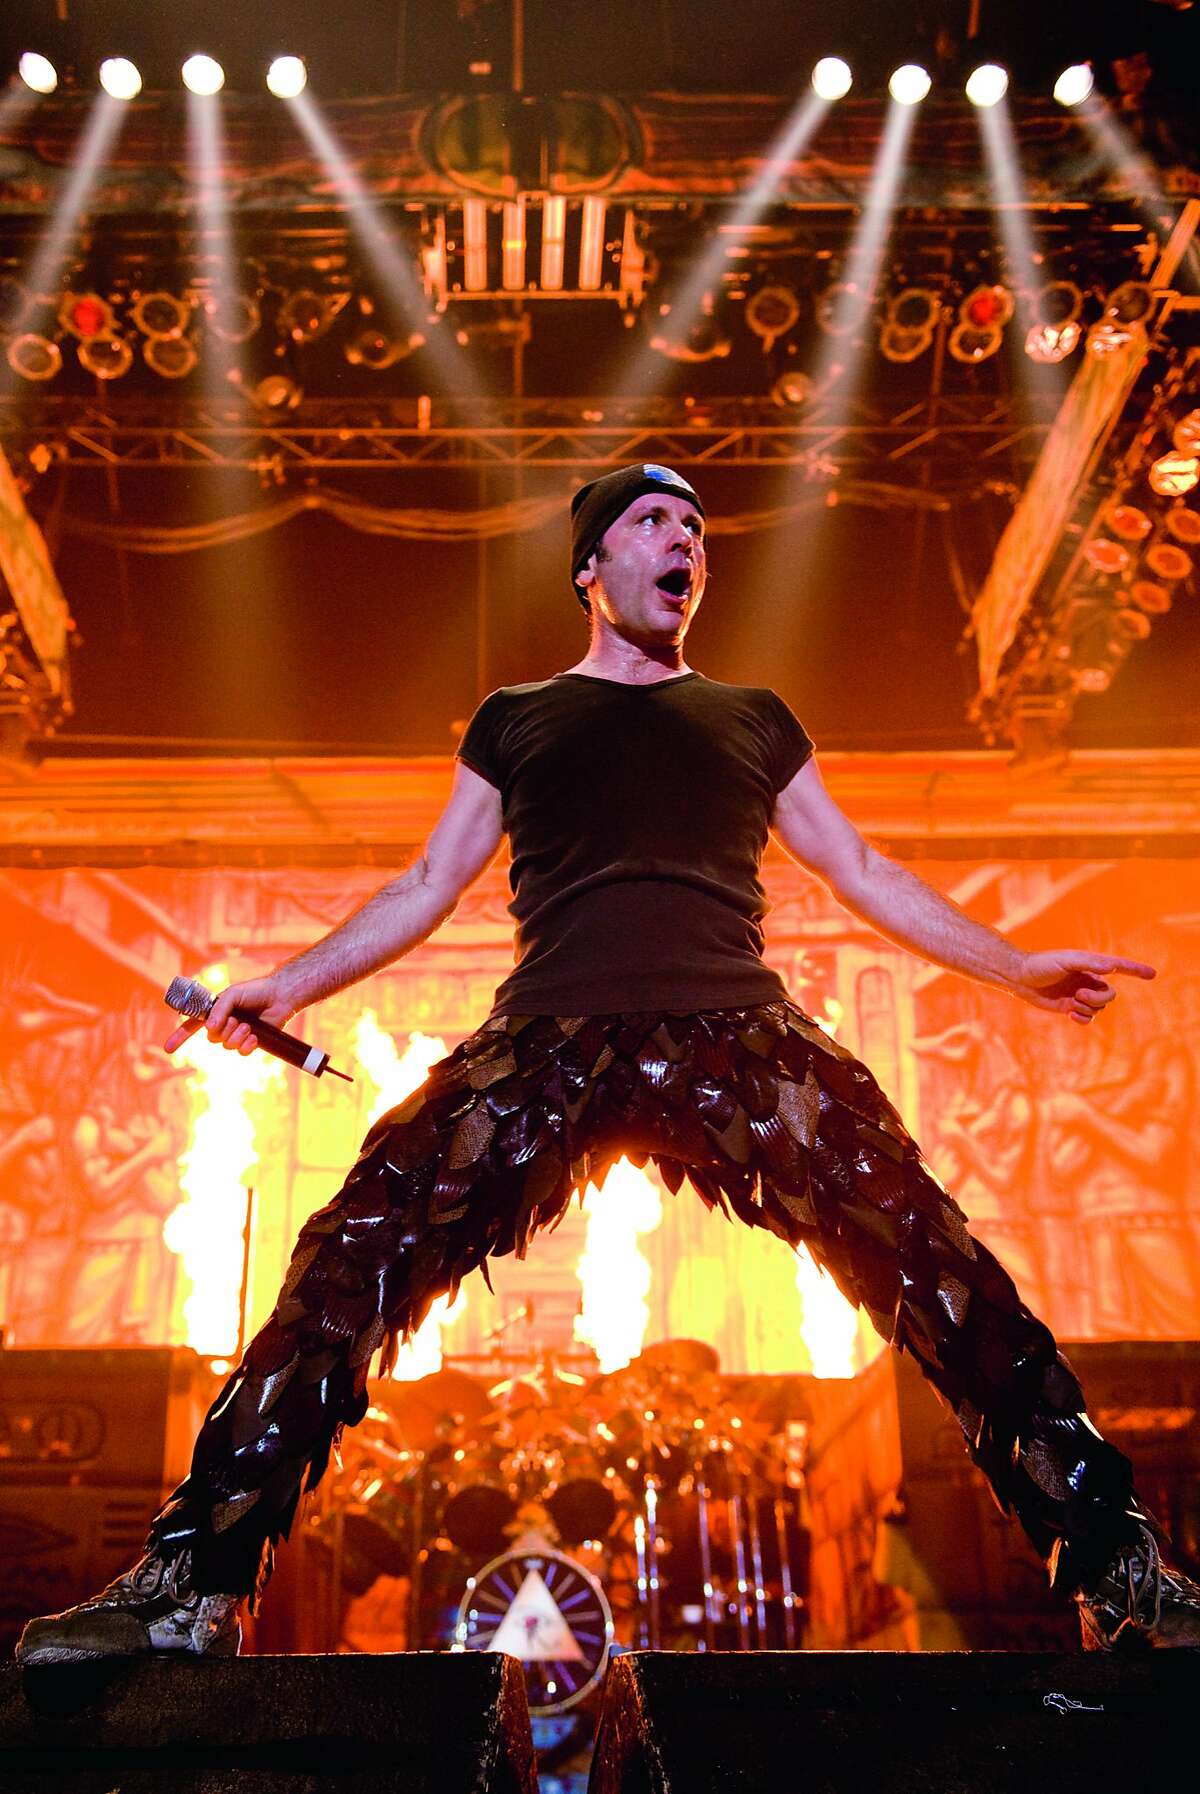 Bruce Dickinson, one of heavy metal's legendary singers and known for his operatic style and ear-splitting screams, is seen here in concert with Iron Maiden.